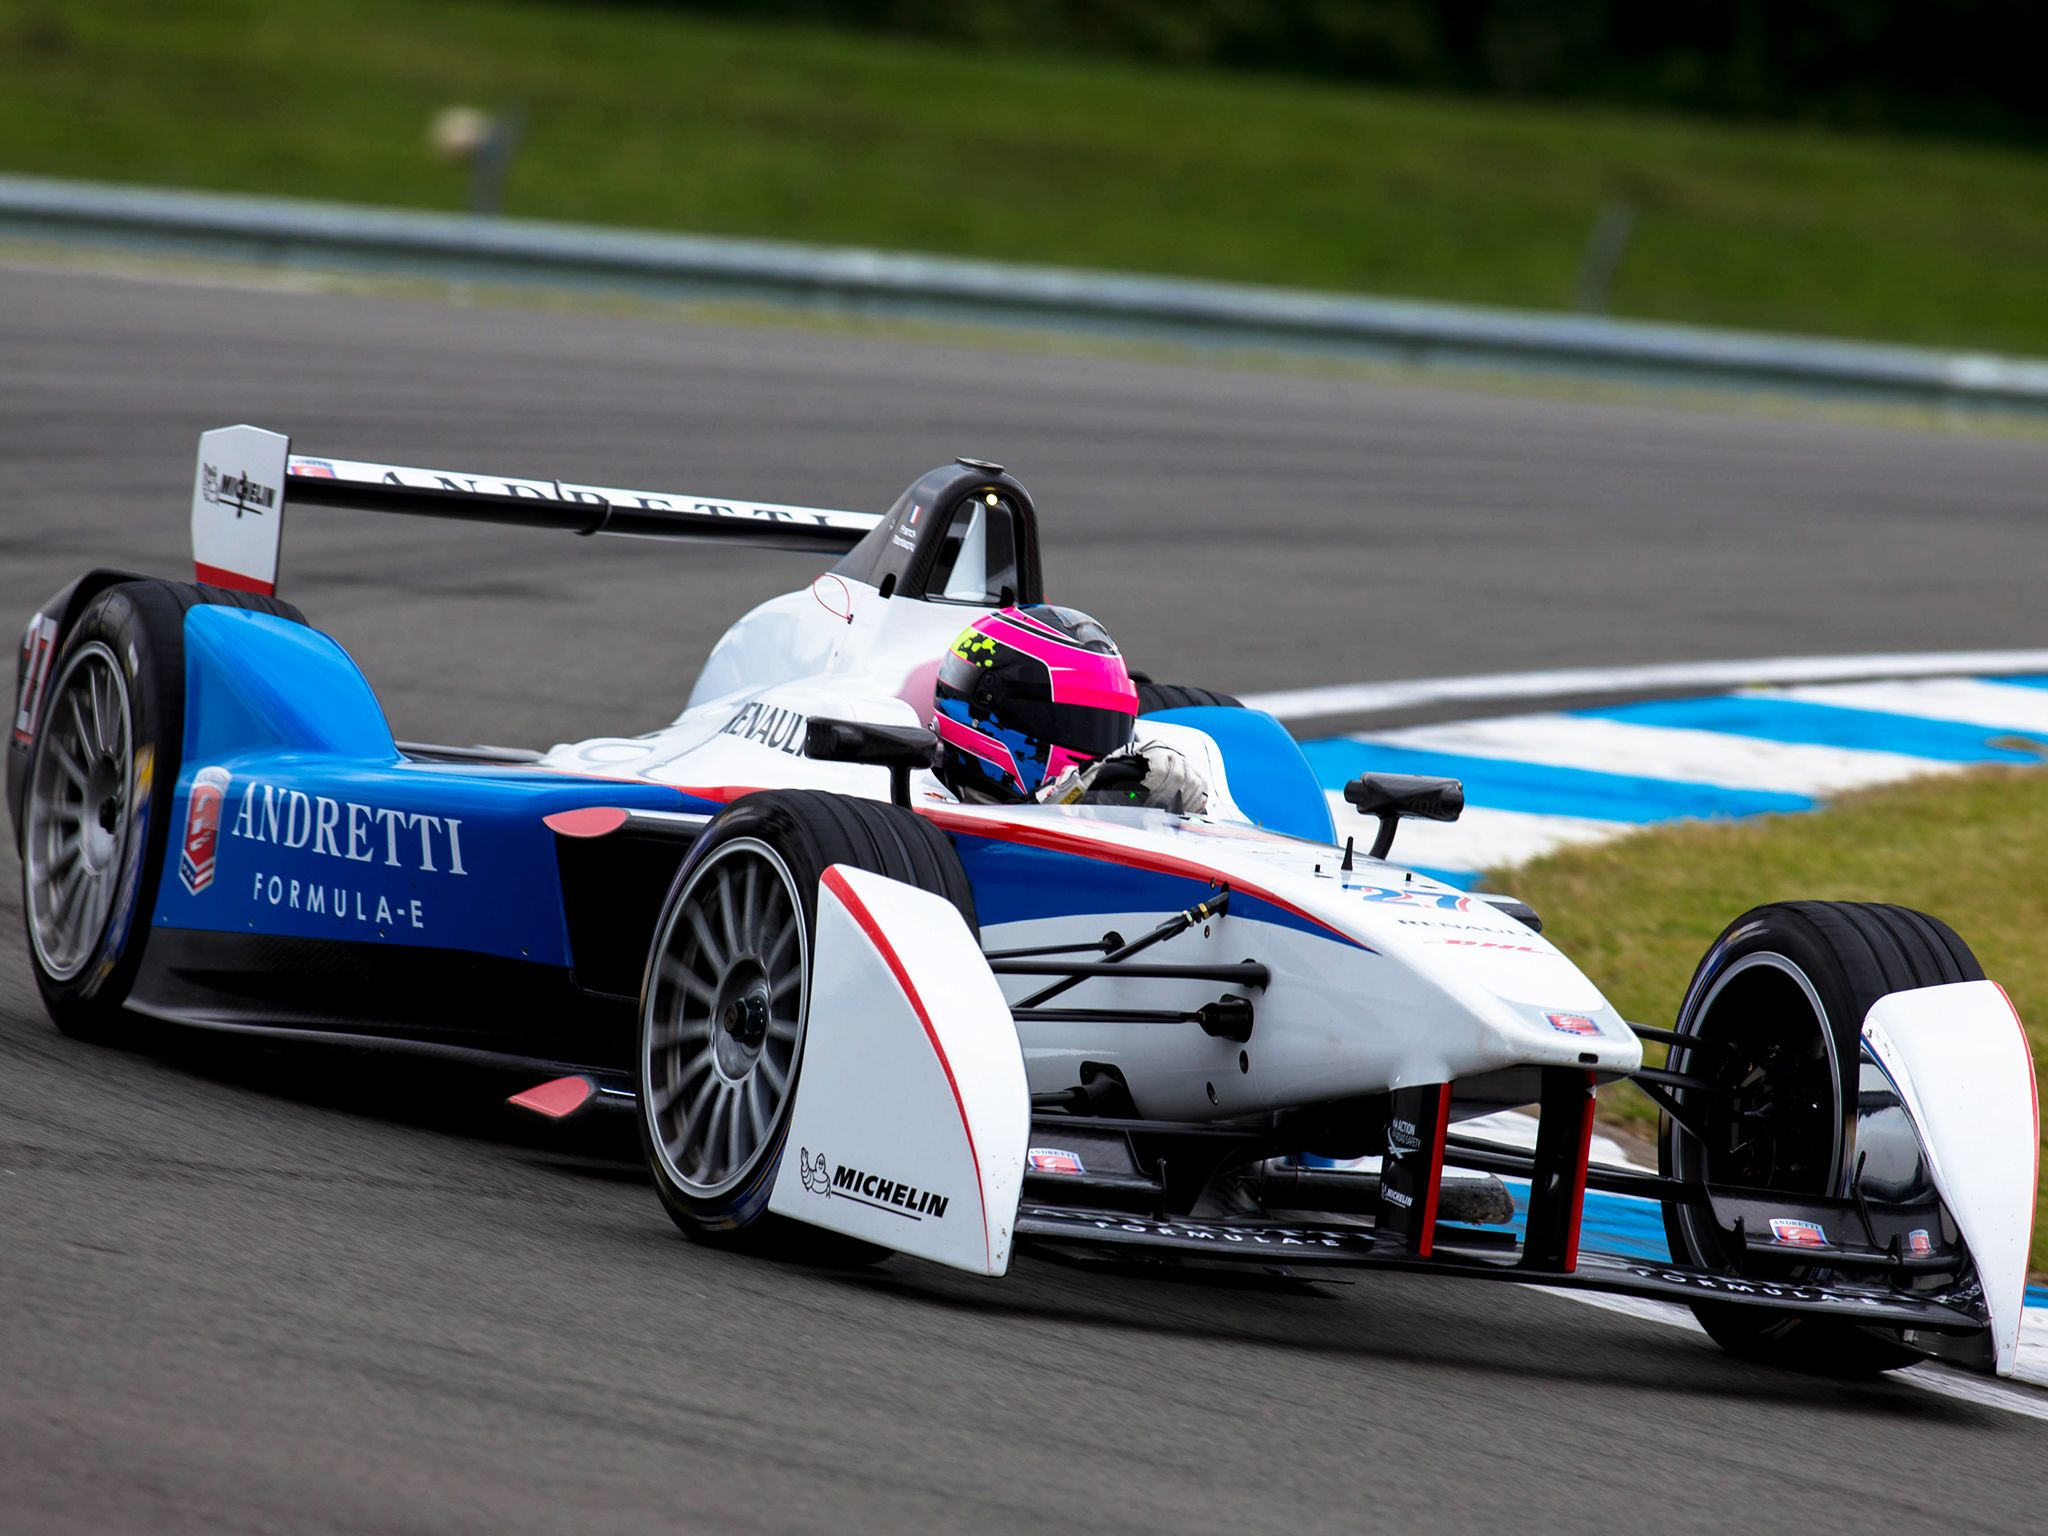 Donington, UK: Andretti car on the track. This image is from Formula E: Racing Recharged. [Photo of the day - سپتامبر 2014]